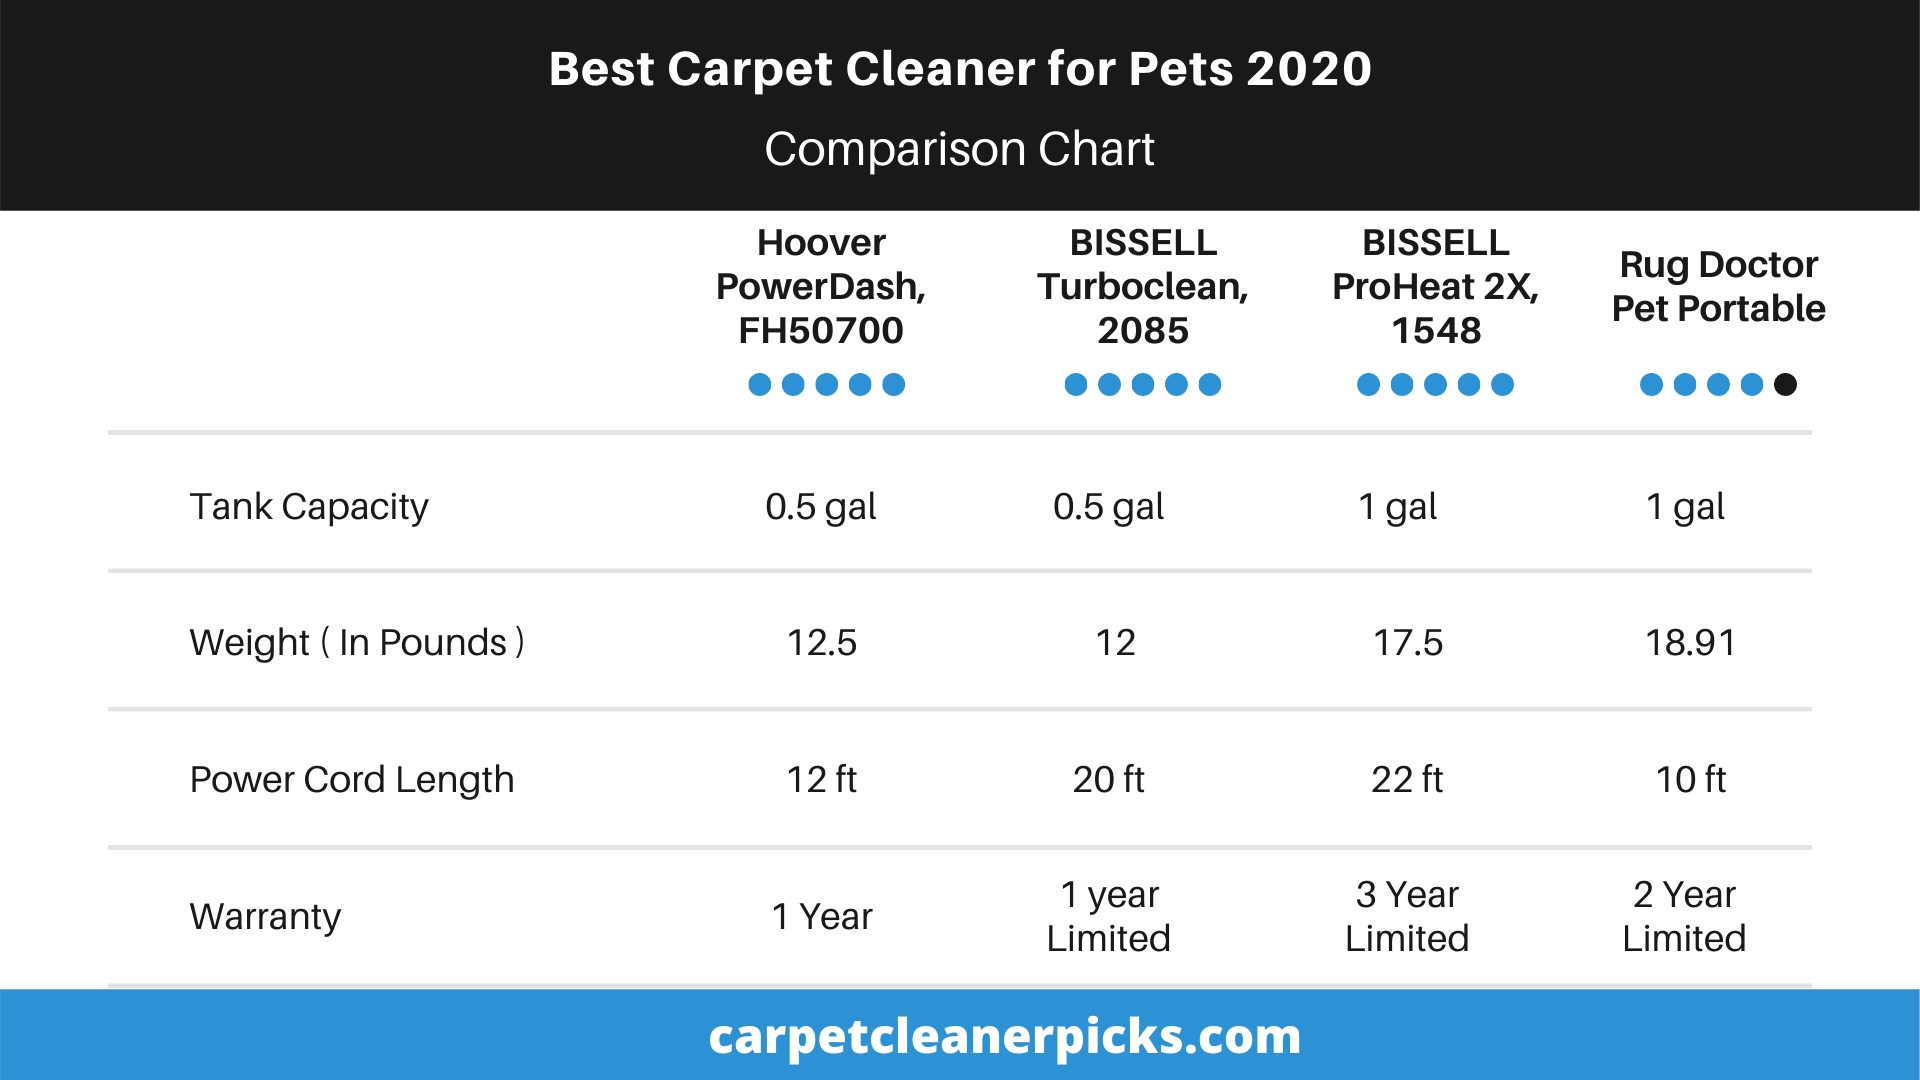 Comparison Chart - Best Carpet Cleaner for Pets